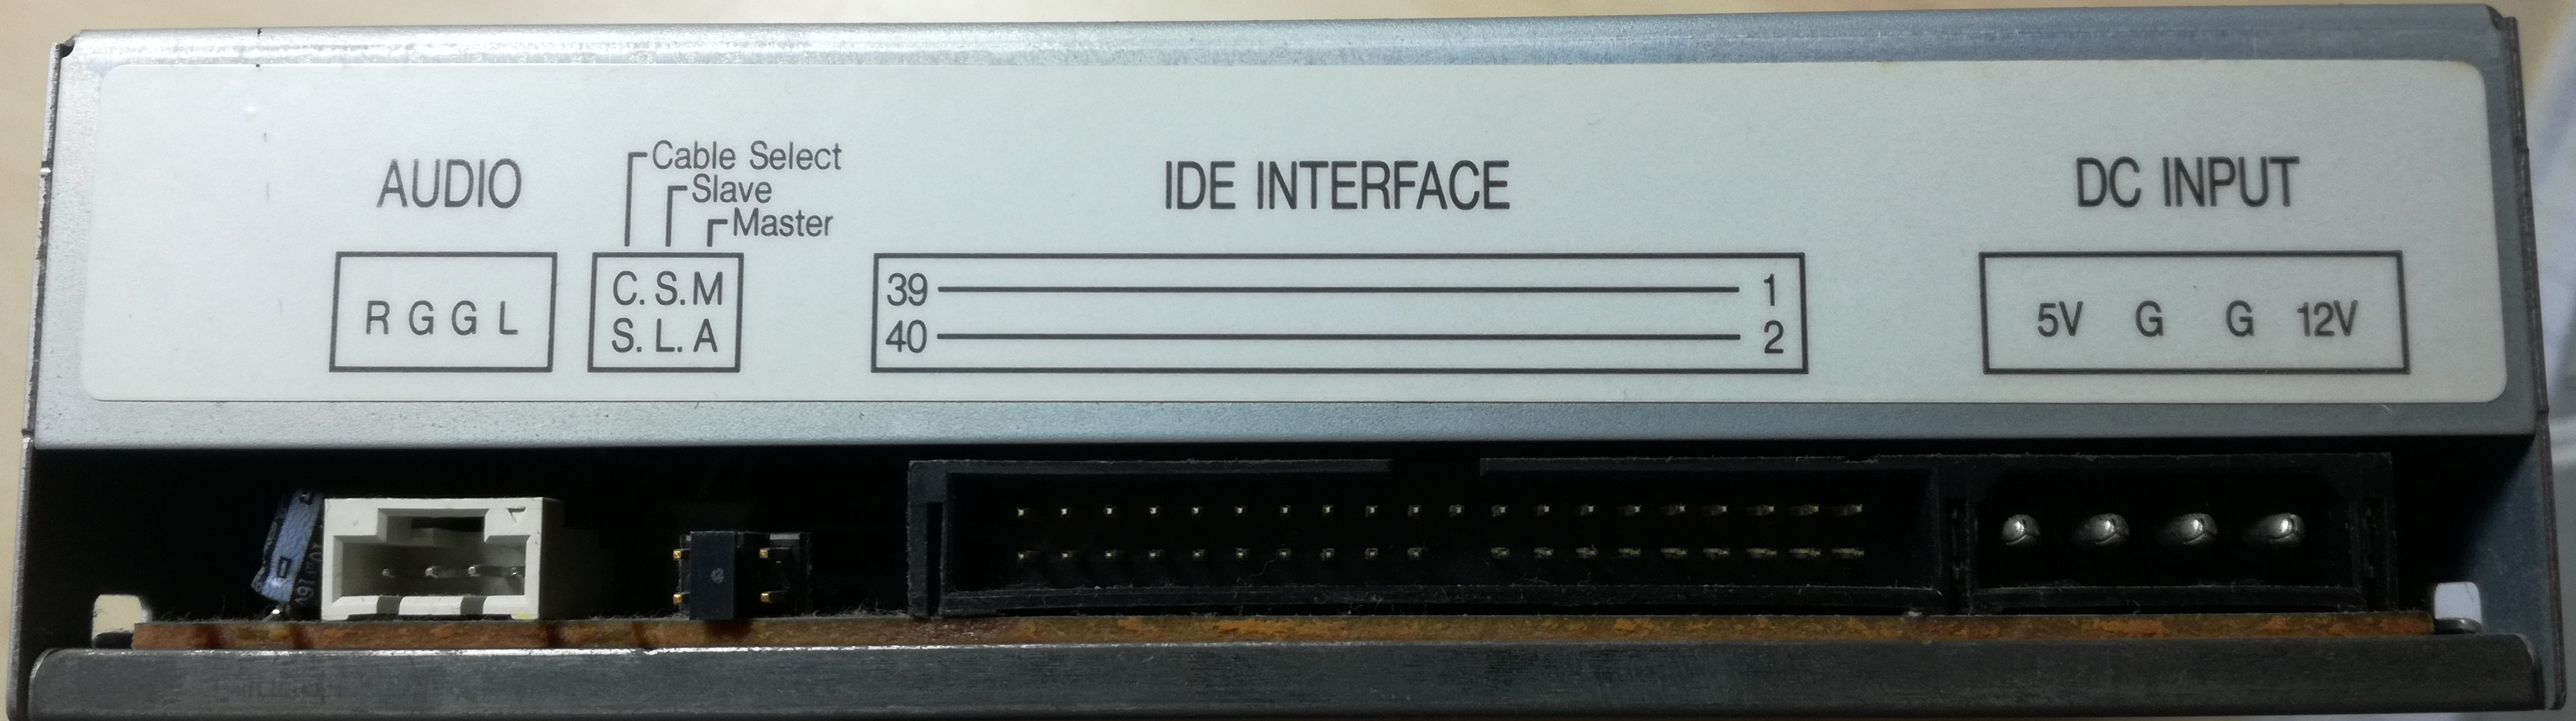 Using old CD-drive as a music player   Hackaday io